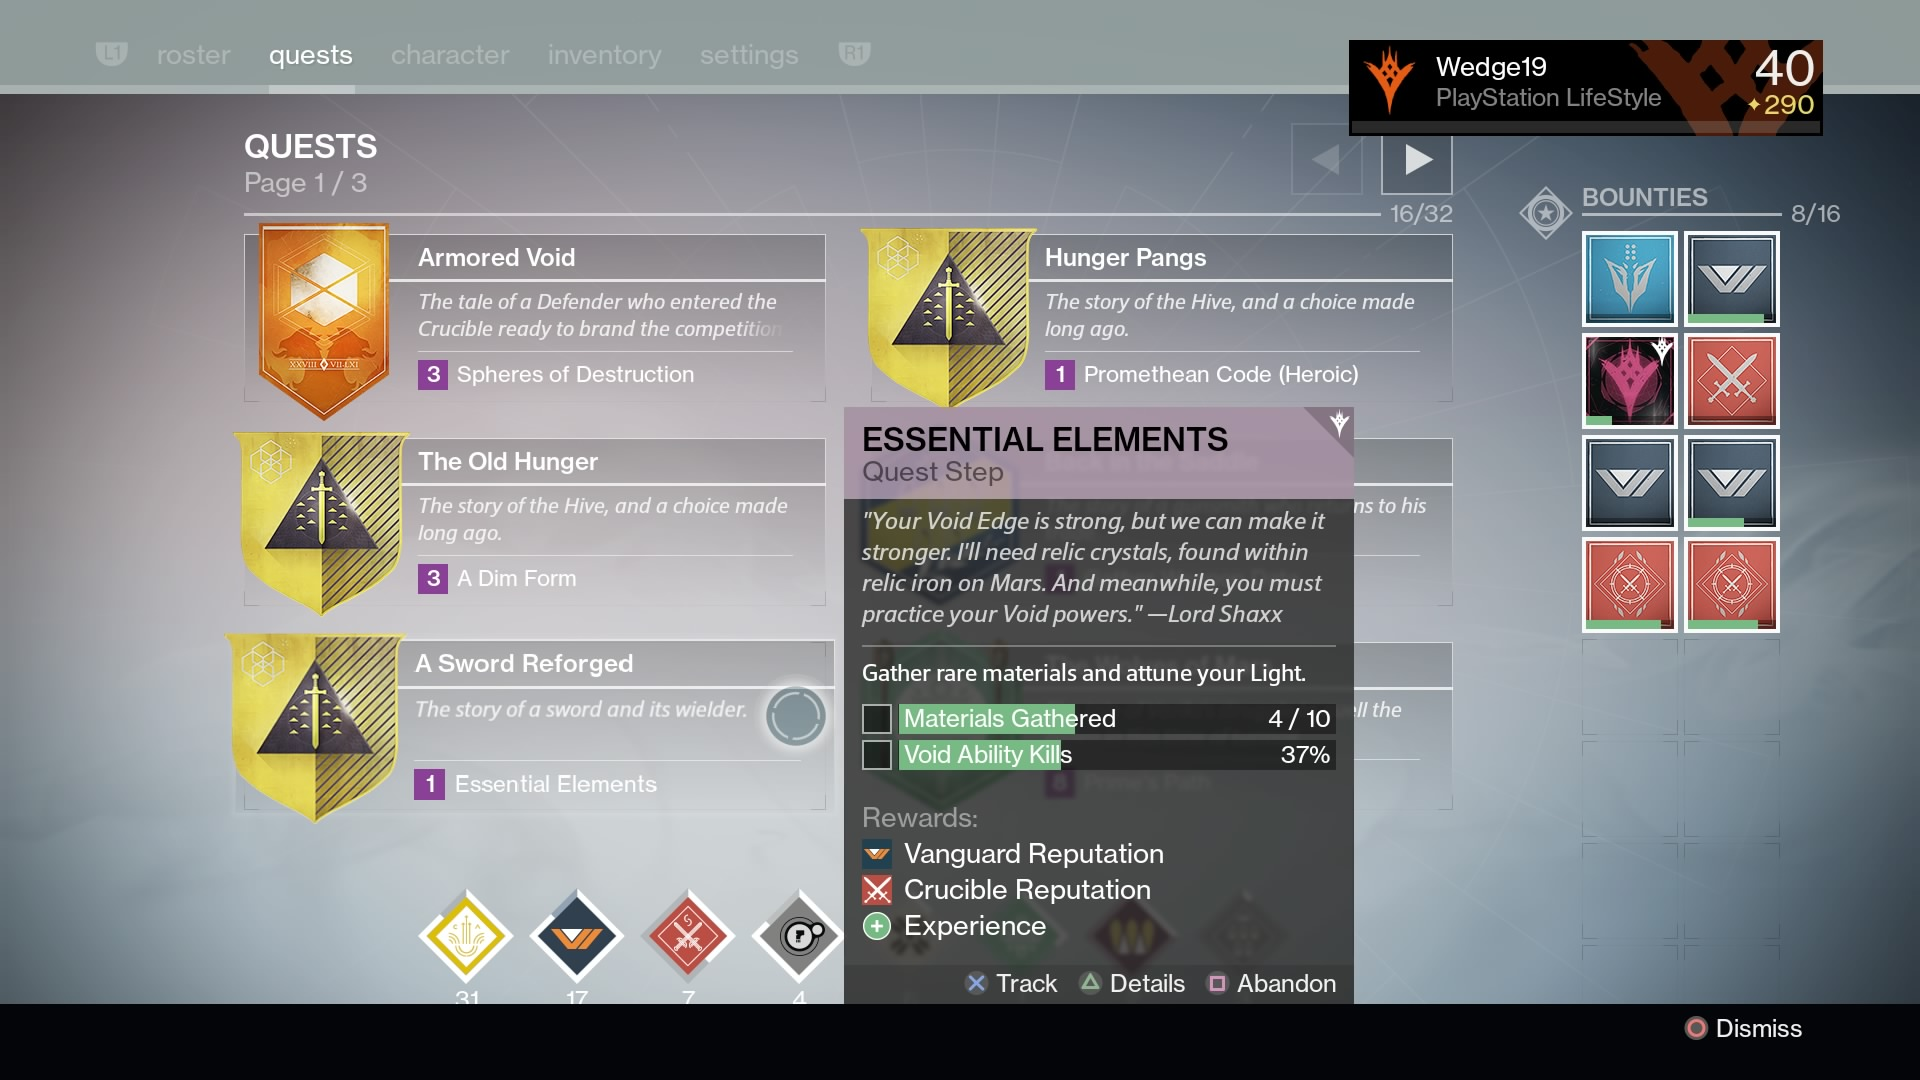 Destiny Update 2.2.0 Is Live, Here's the Patch Notes